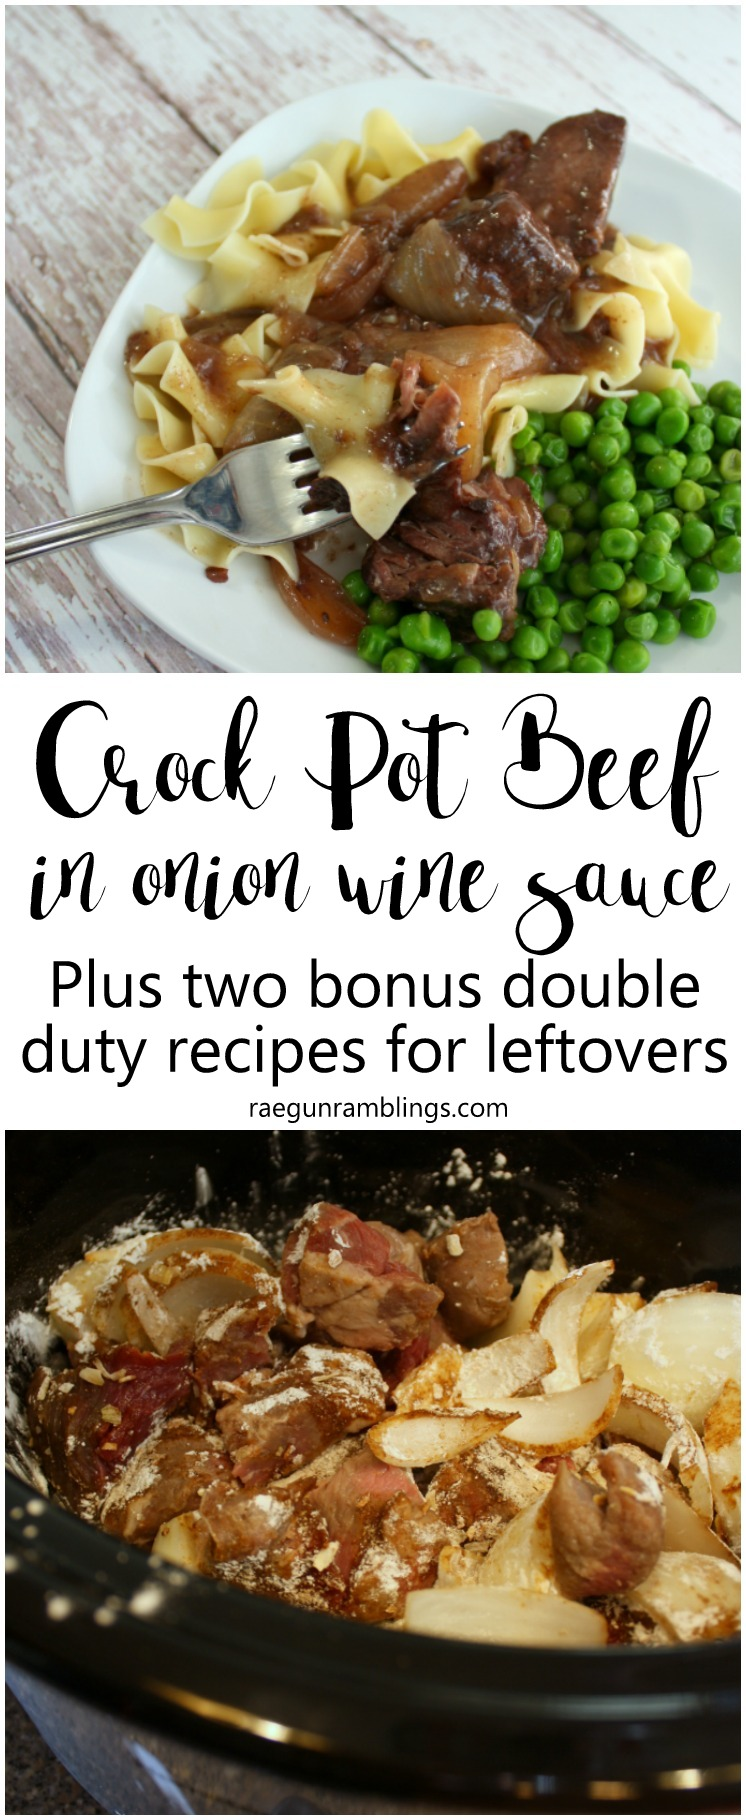 This recipe is SO good. Just dump everything in the crock pot for onion beef pasta. Plus 2 leftover recipes. Great weekday meal ideas